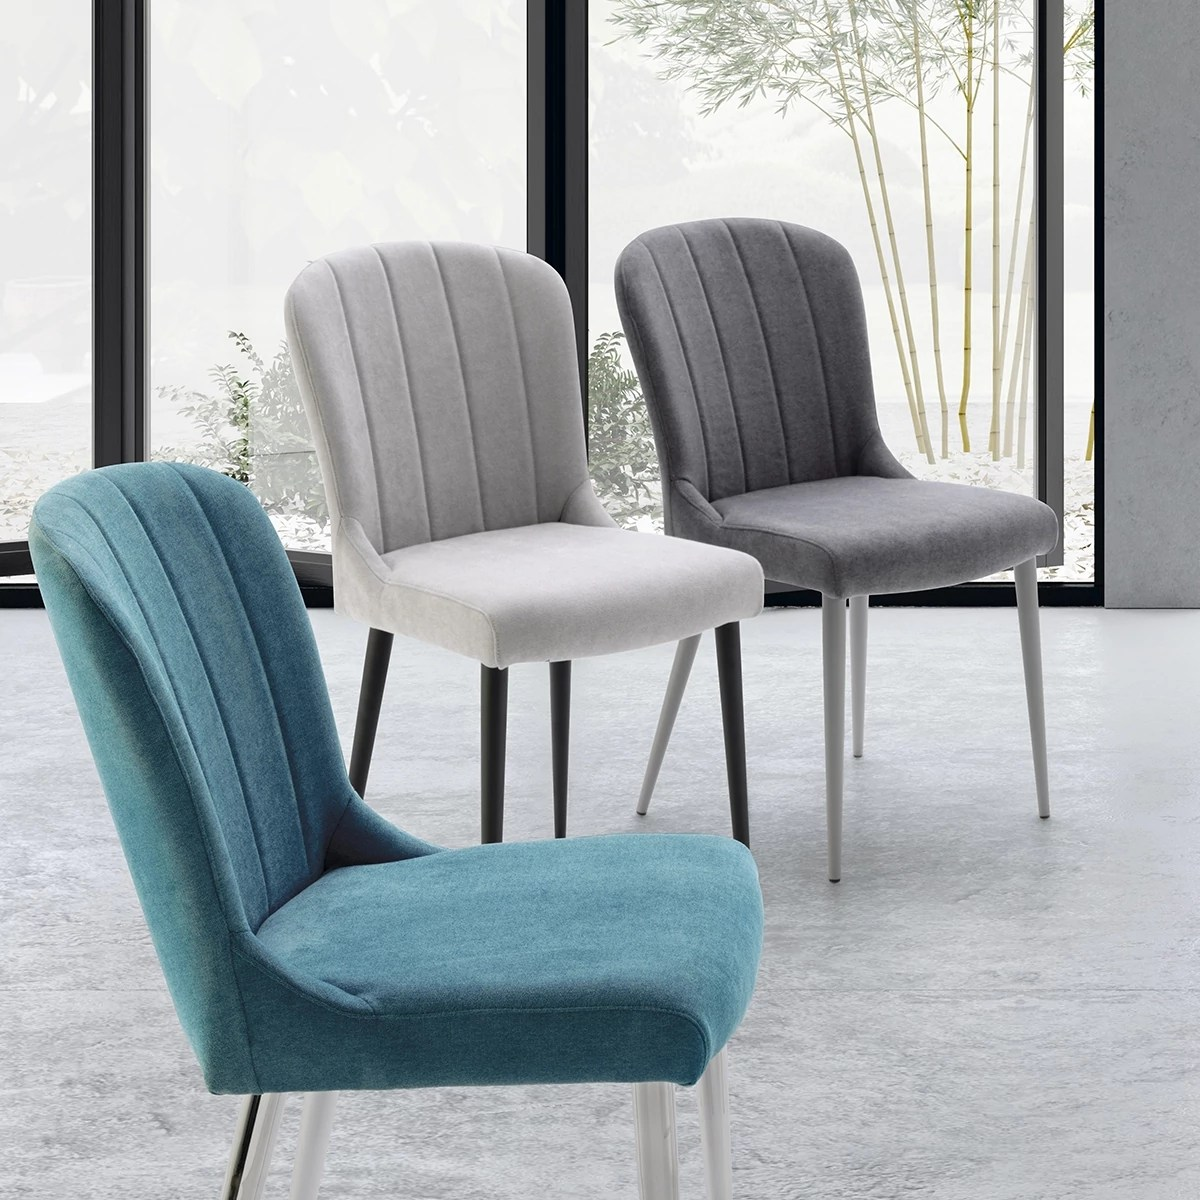 Chaises Salon Design Chaise Salon Design Chaises De Salon Tous Les